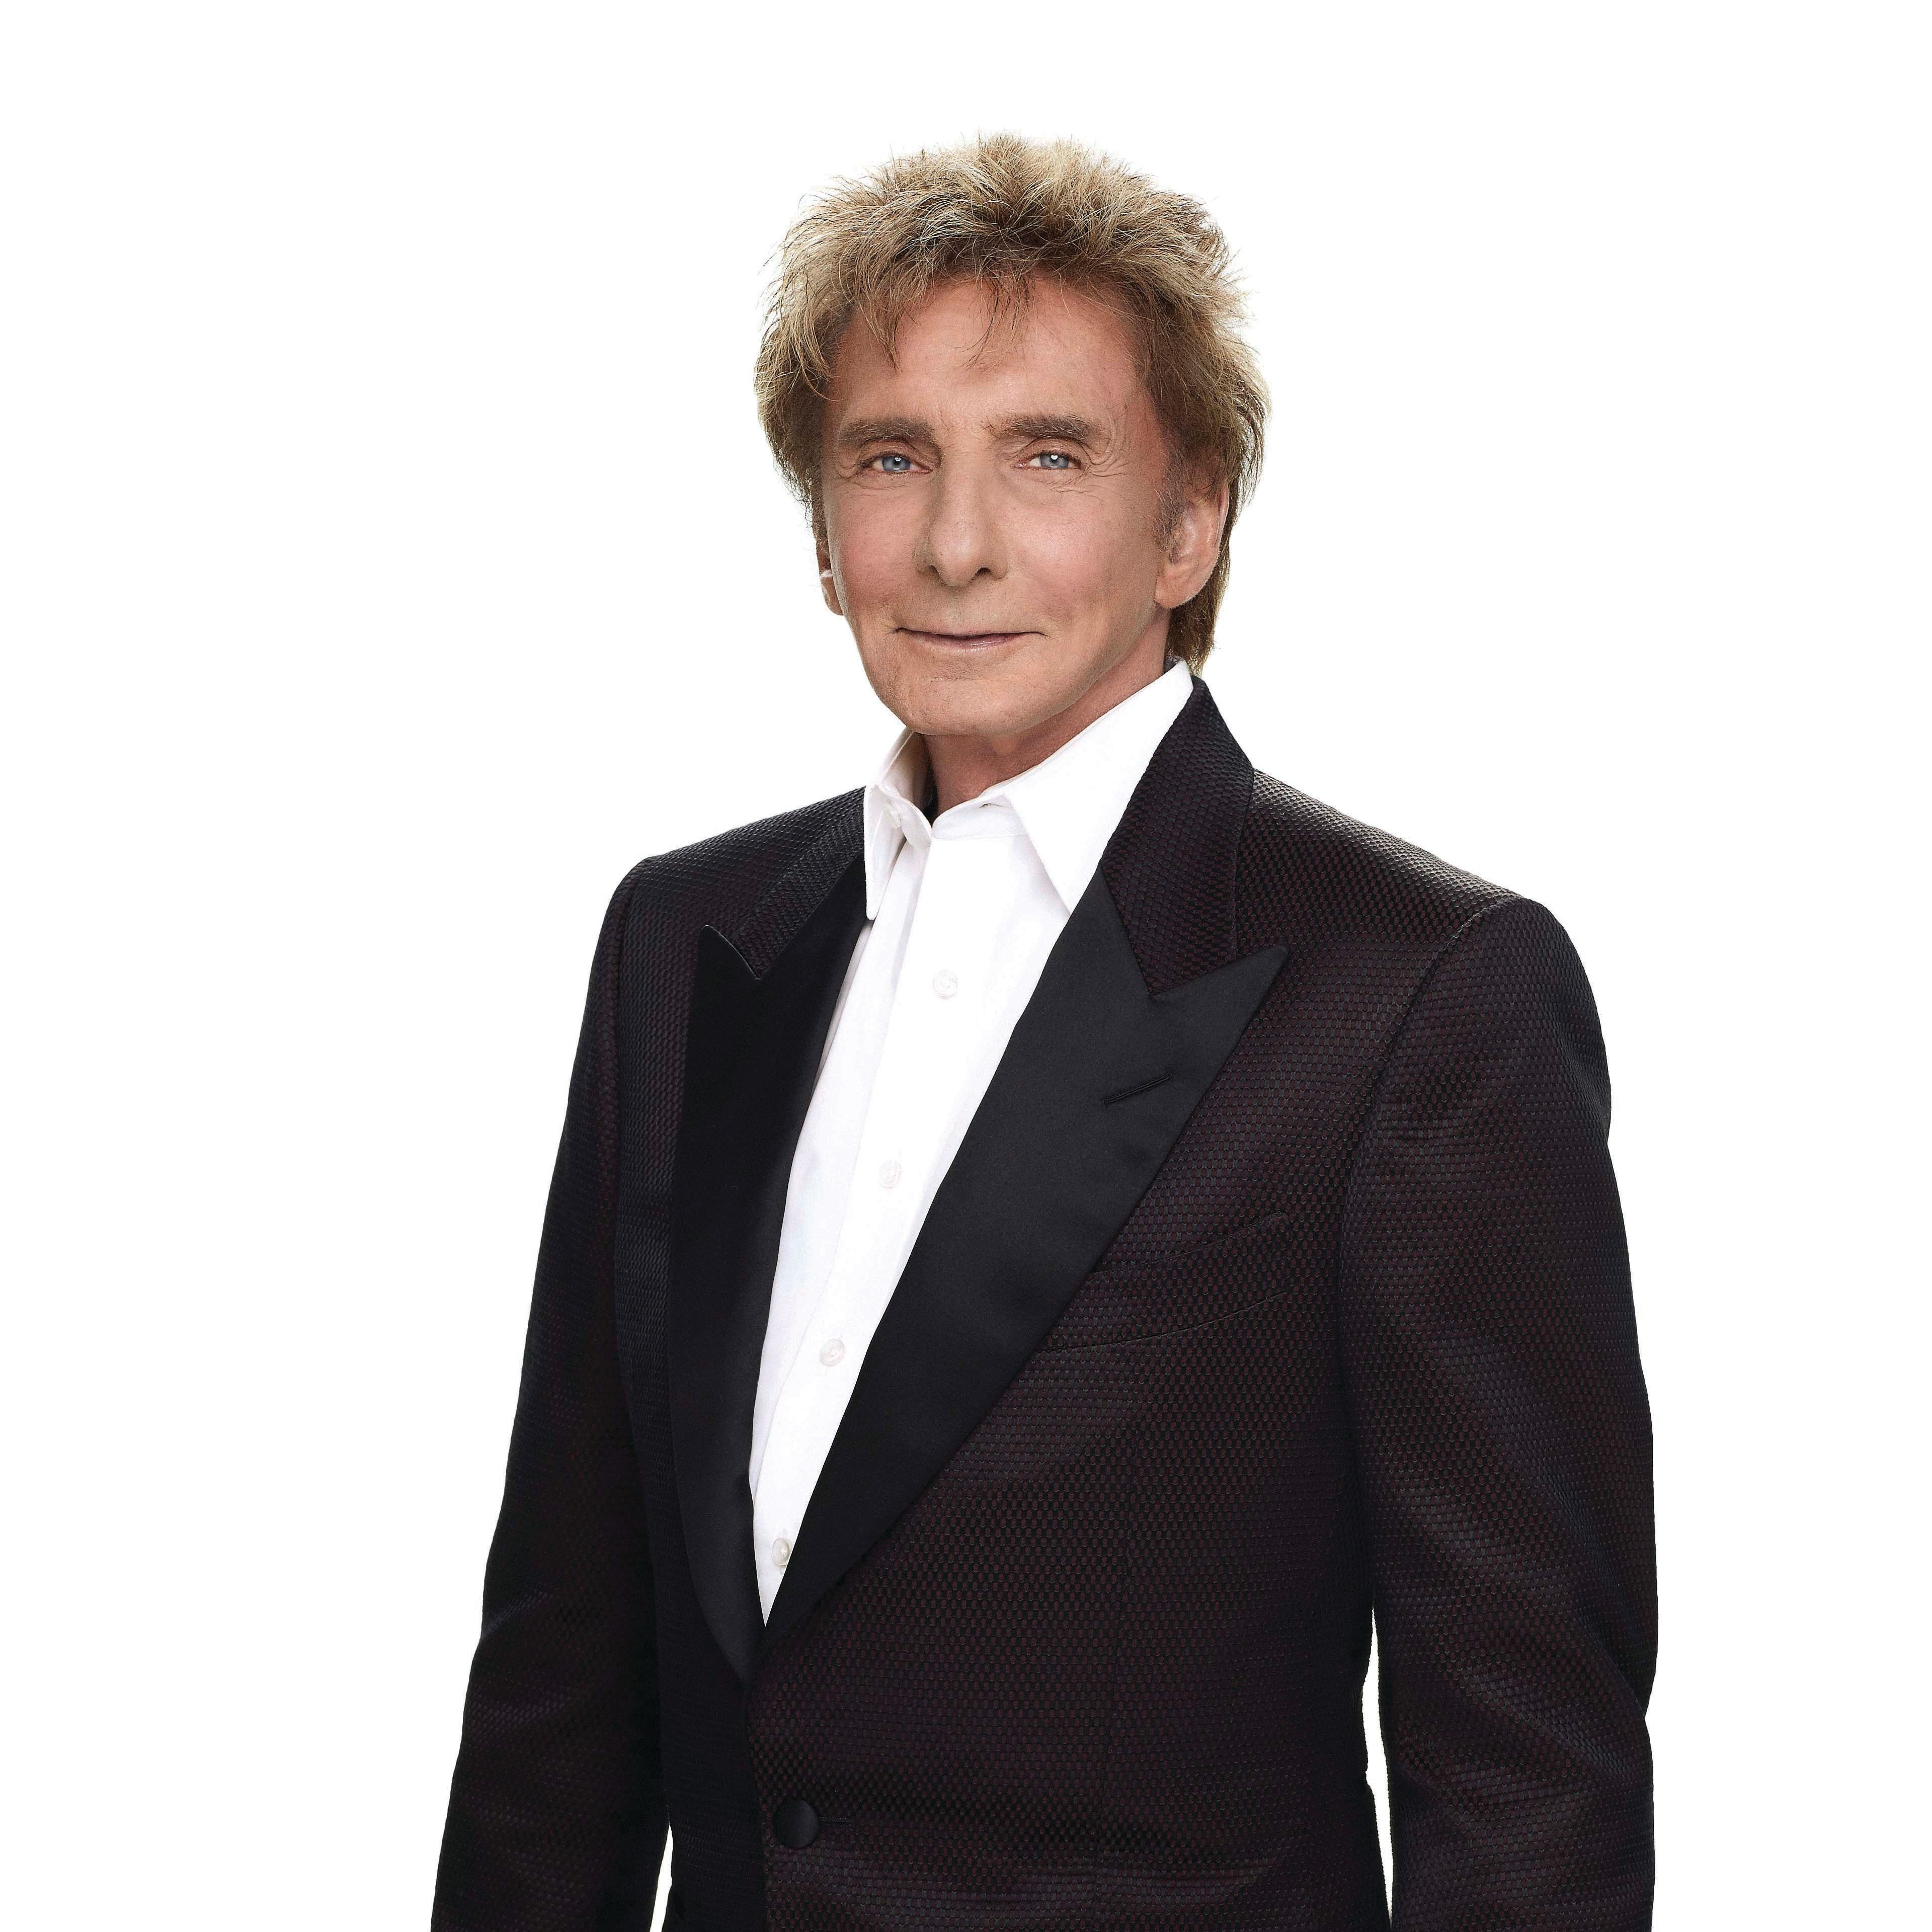 Barrymanilow press photo 1 tga6ph